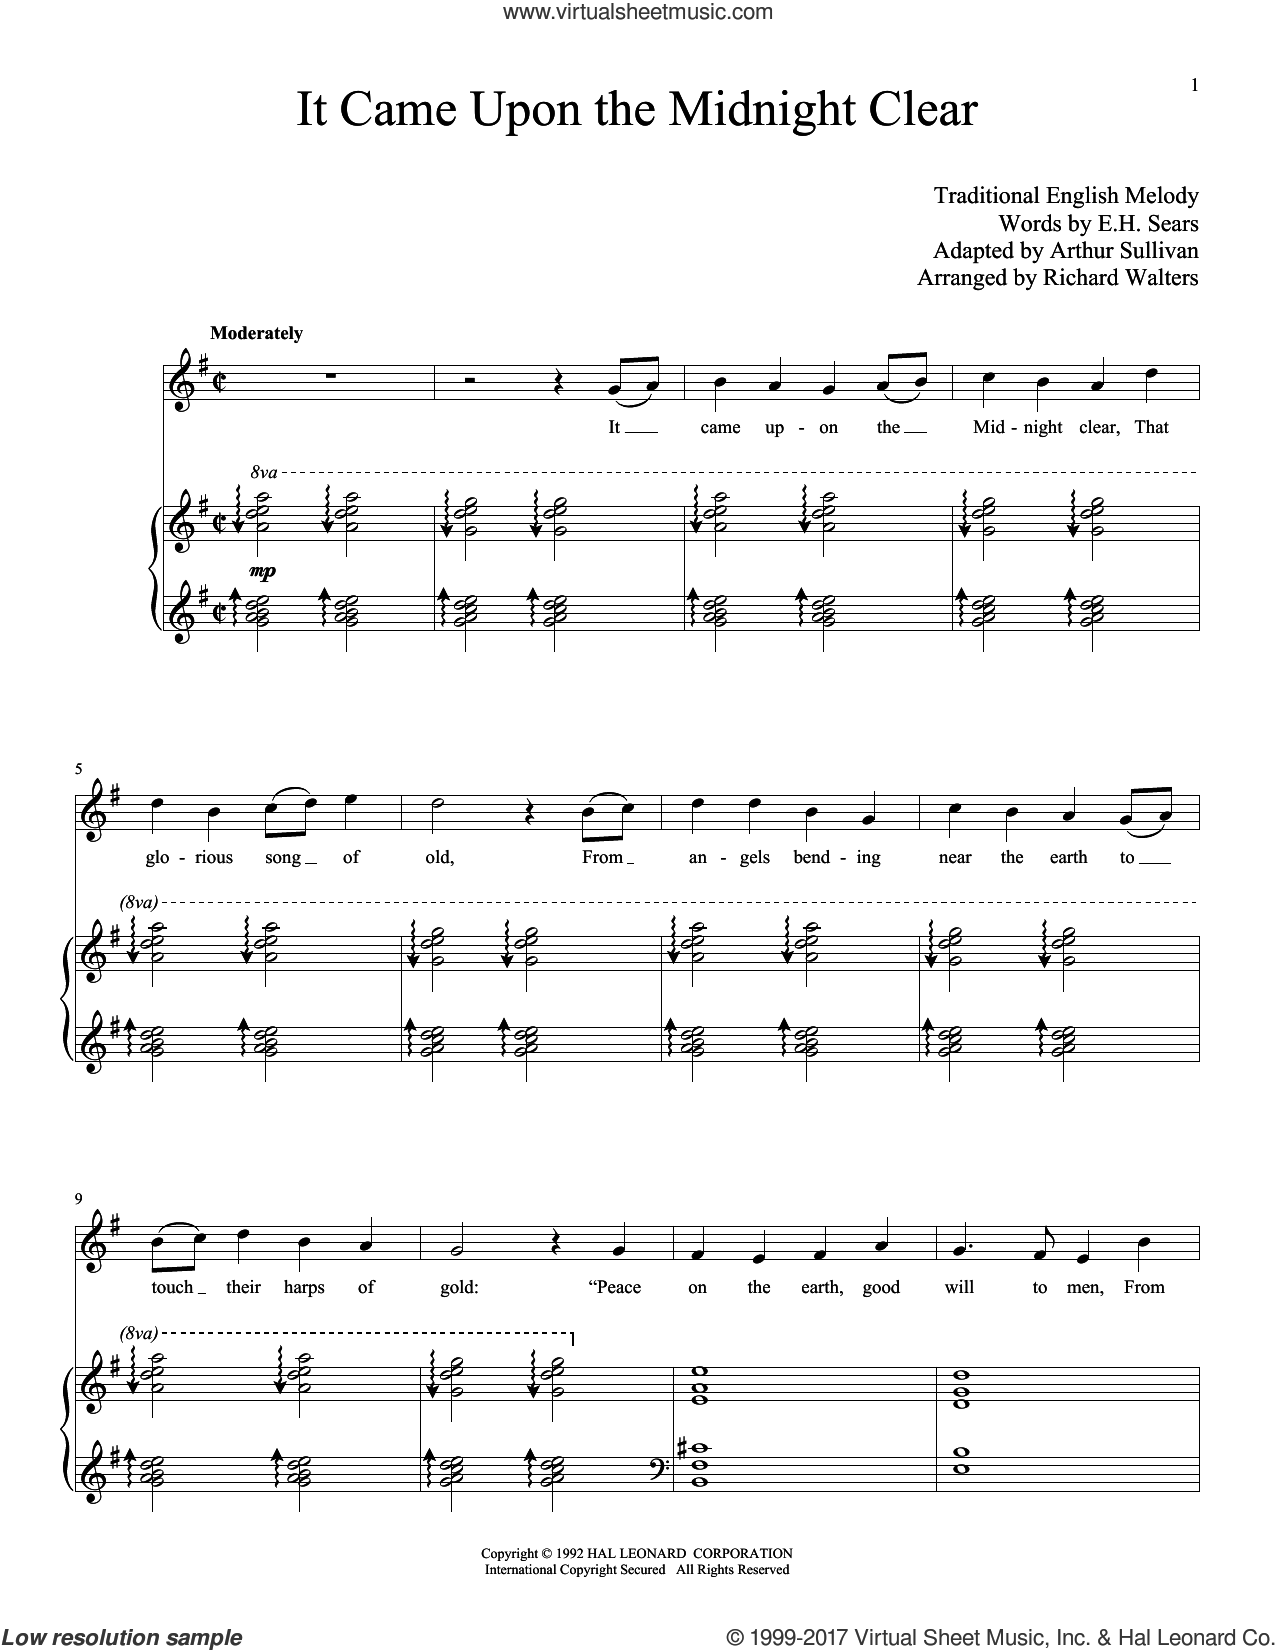 It Came Upon The Midnight Clear sheet music for voice and piano (High Voice) by Edmund Hamilton Sears, Miscellaneous and Arthur Sullivan (adapted), intermediate skill level